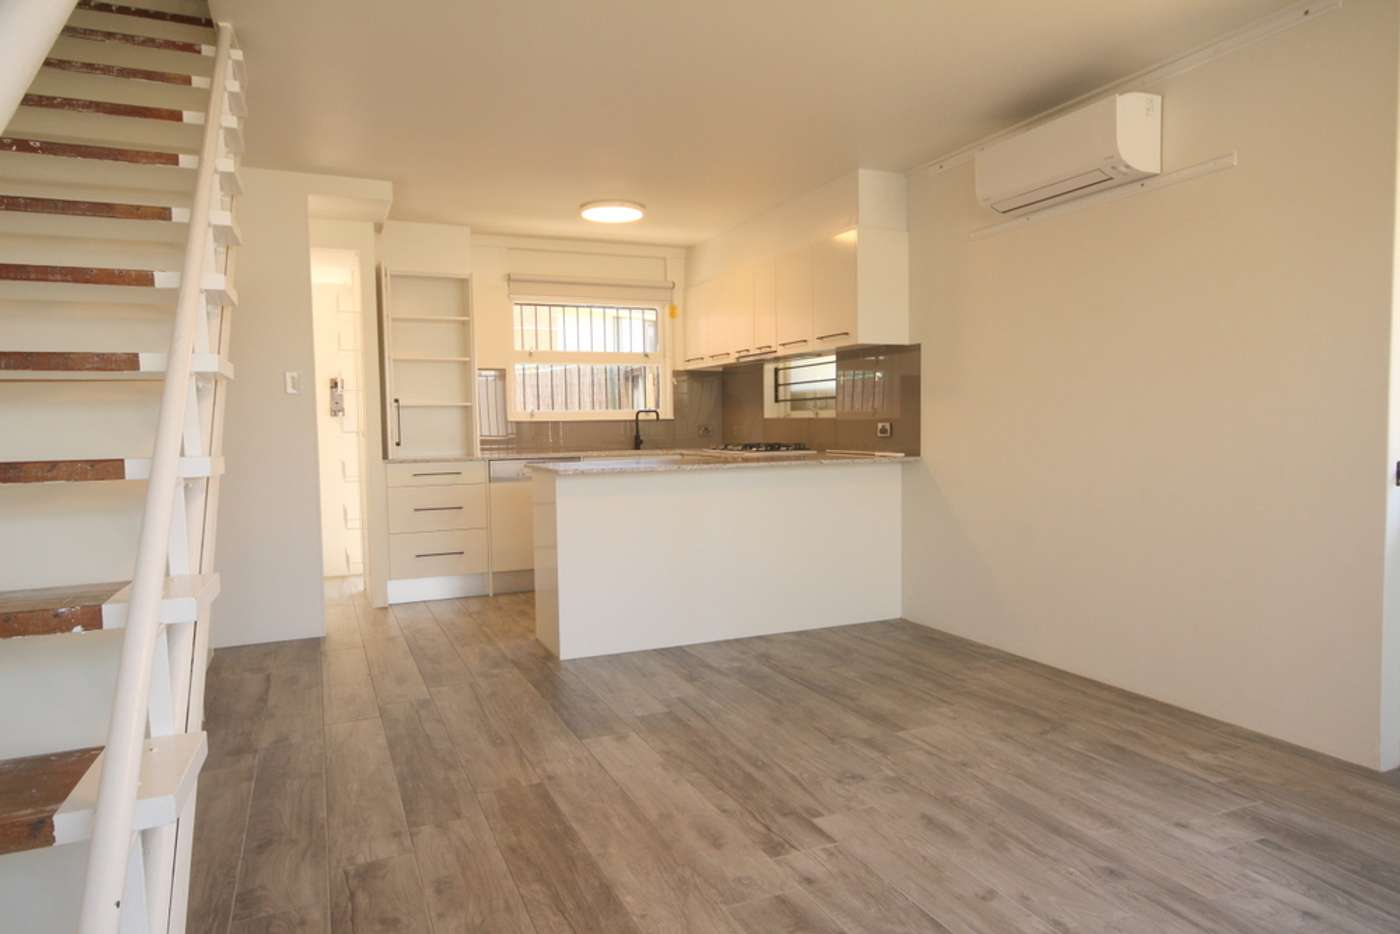 Main view of Homely townhouse listing, 6/34 Stanhill Dr, Surfers Paradise QLD 4217